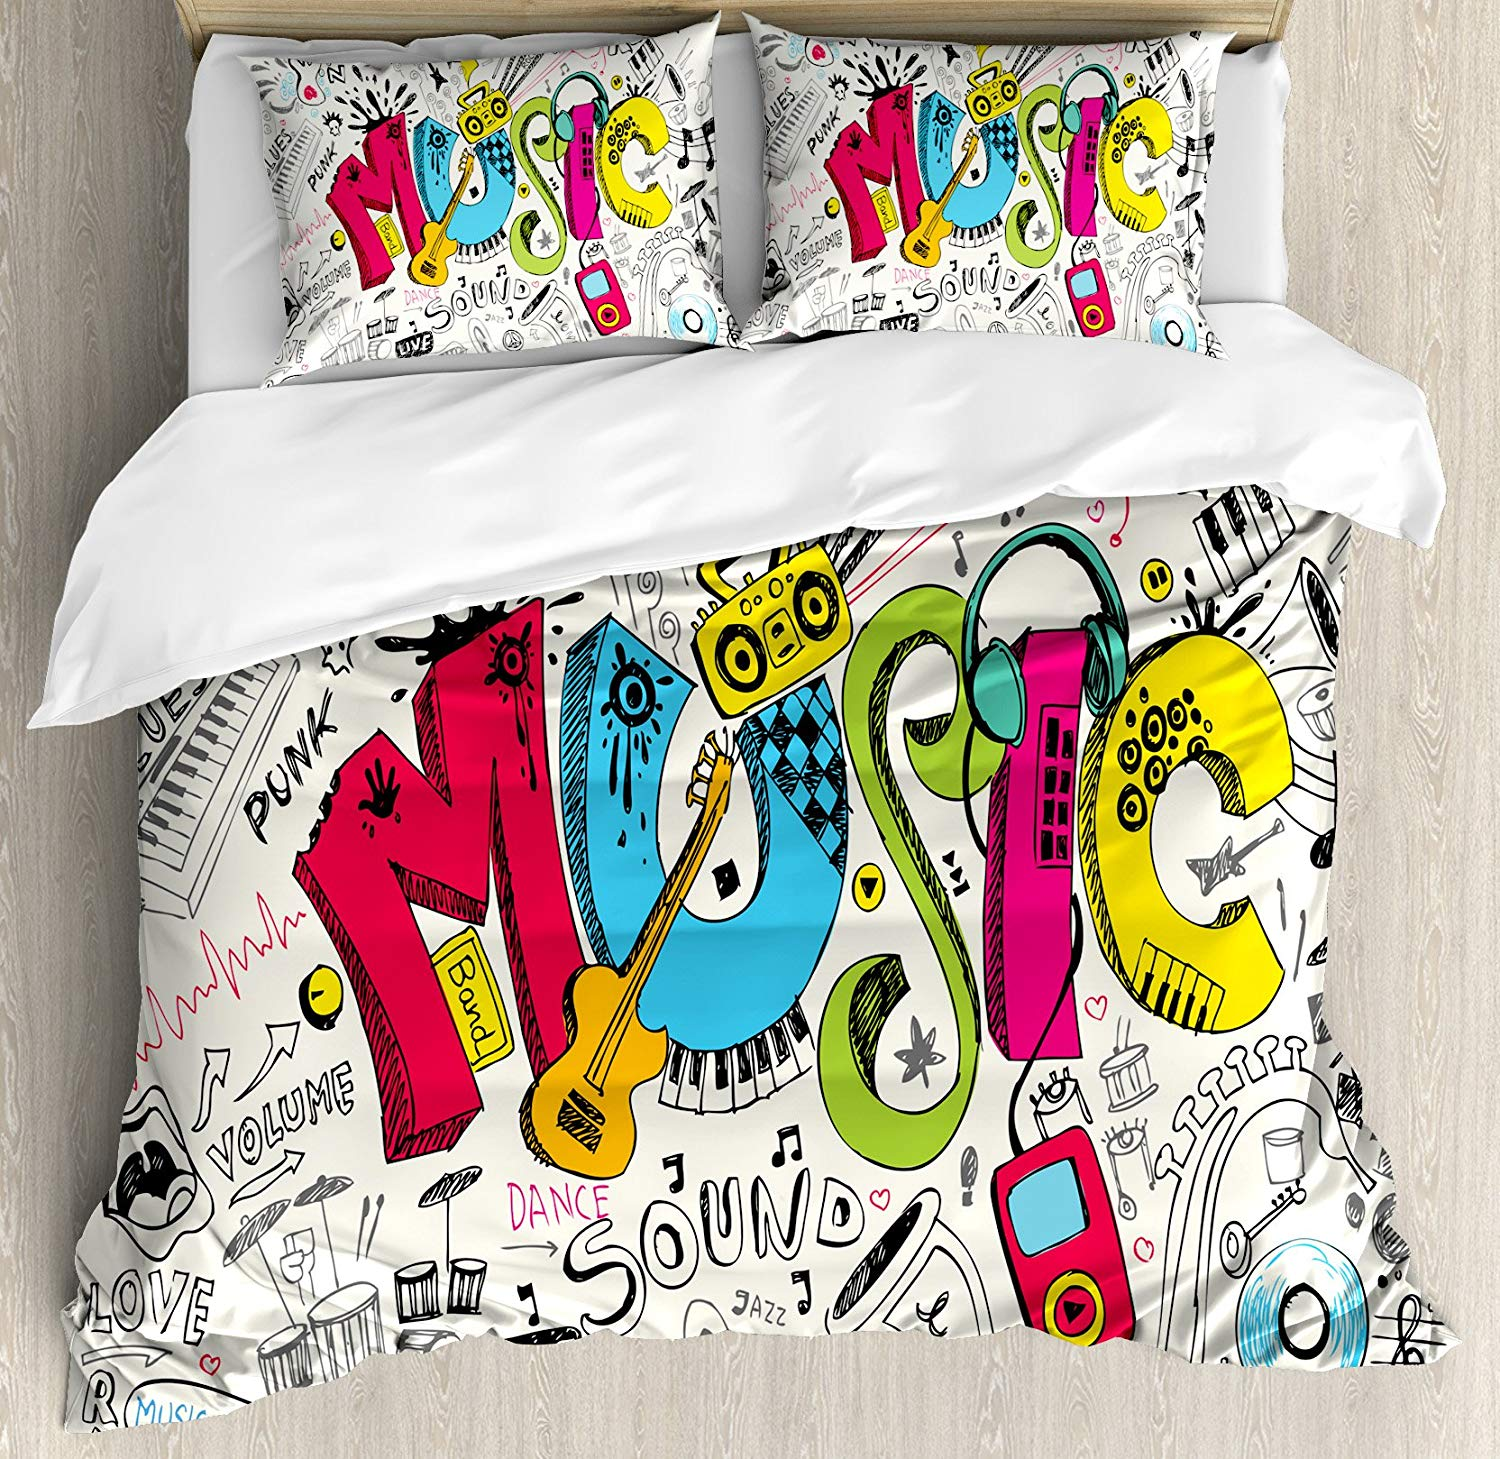 Music Duvet Cover Set Pop Art Featured Doodle Style Musical Background with Instruments Sound Art 3/4pcs Bedding SetMusic Duvet Cover Set Pop Art Featured Doodle Style Musical Background with Instruments Sound Art 3/4pcs Bedding Set